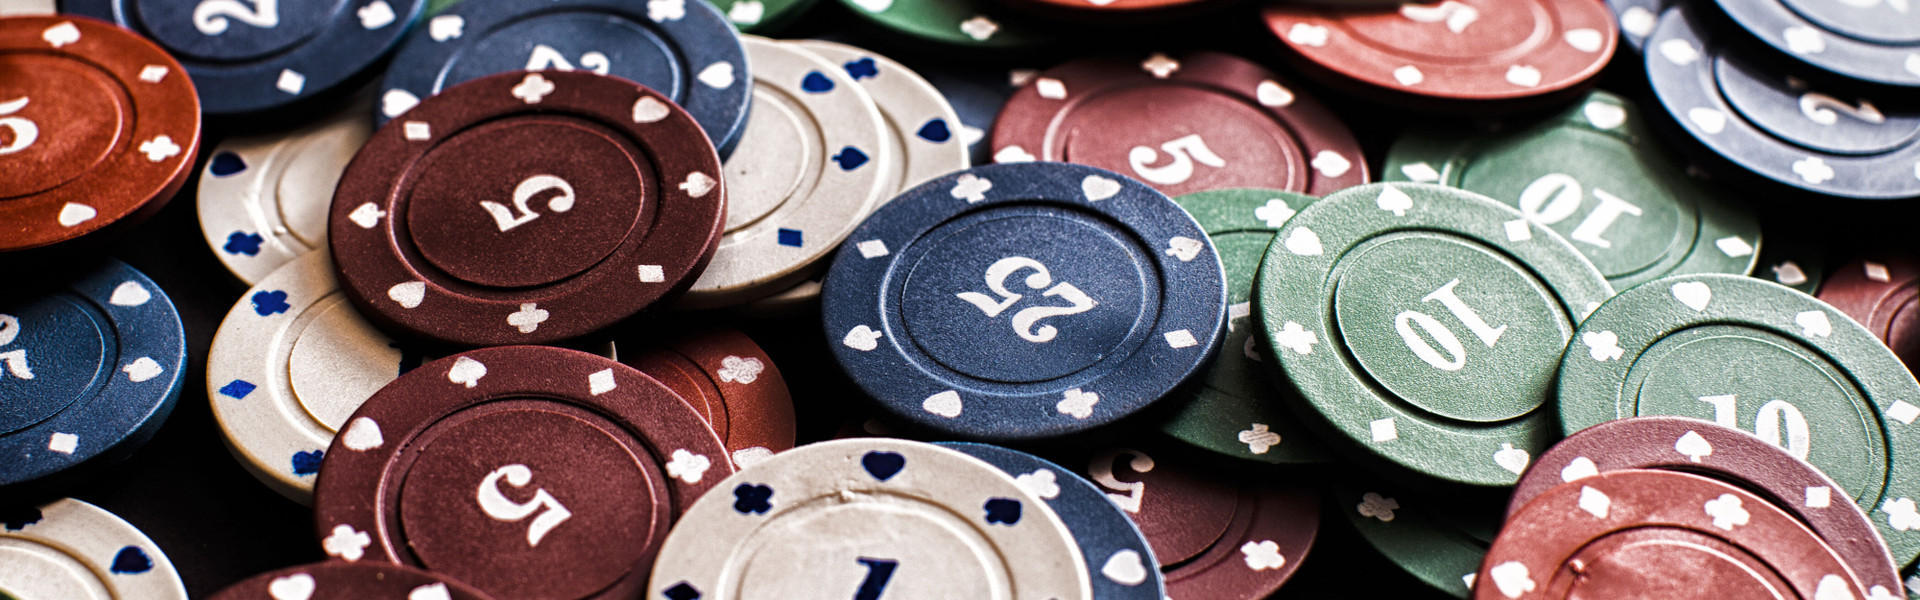 Reliable Platform Where You Can Play Casino Games